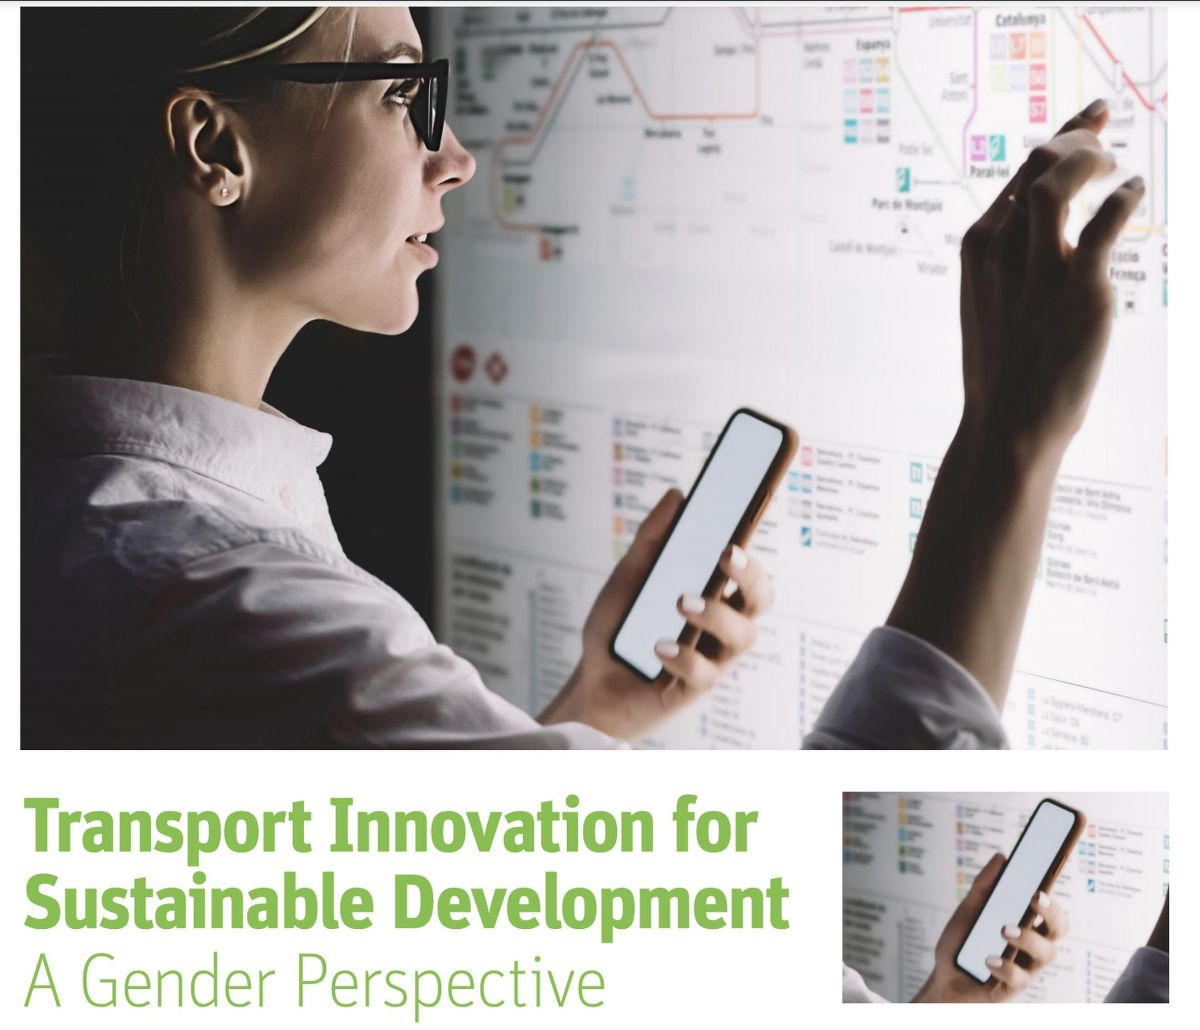 Transport Innovation for Sustainable Development - A Gender Perspective